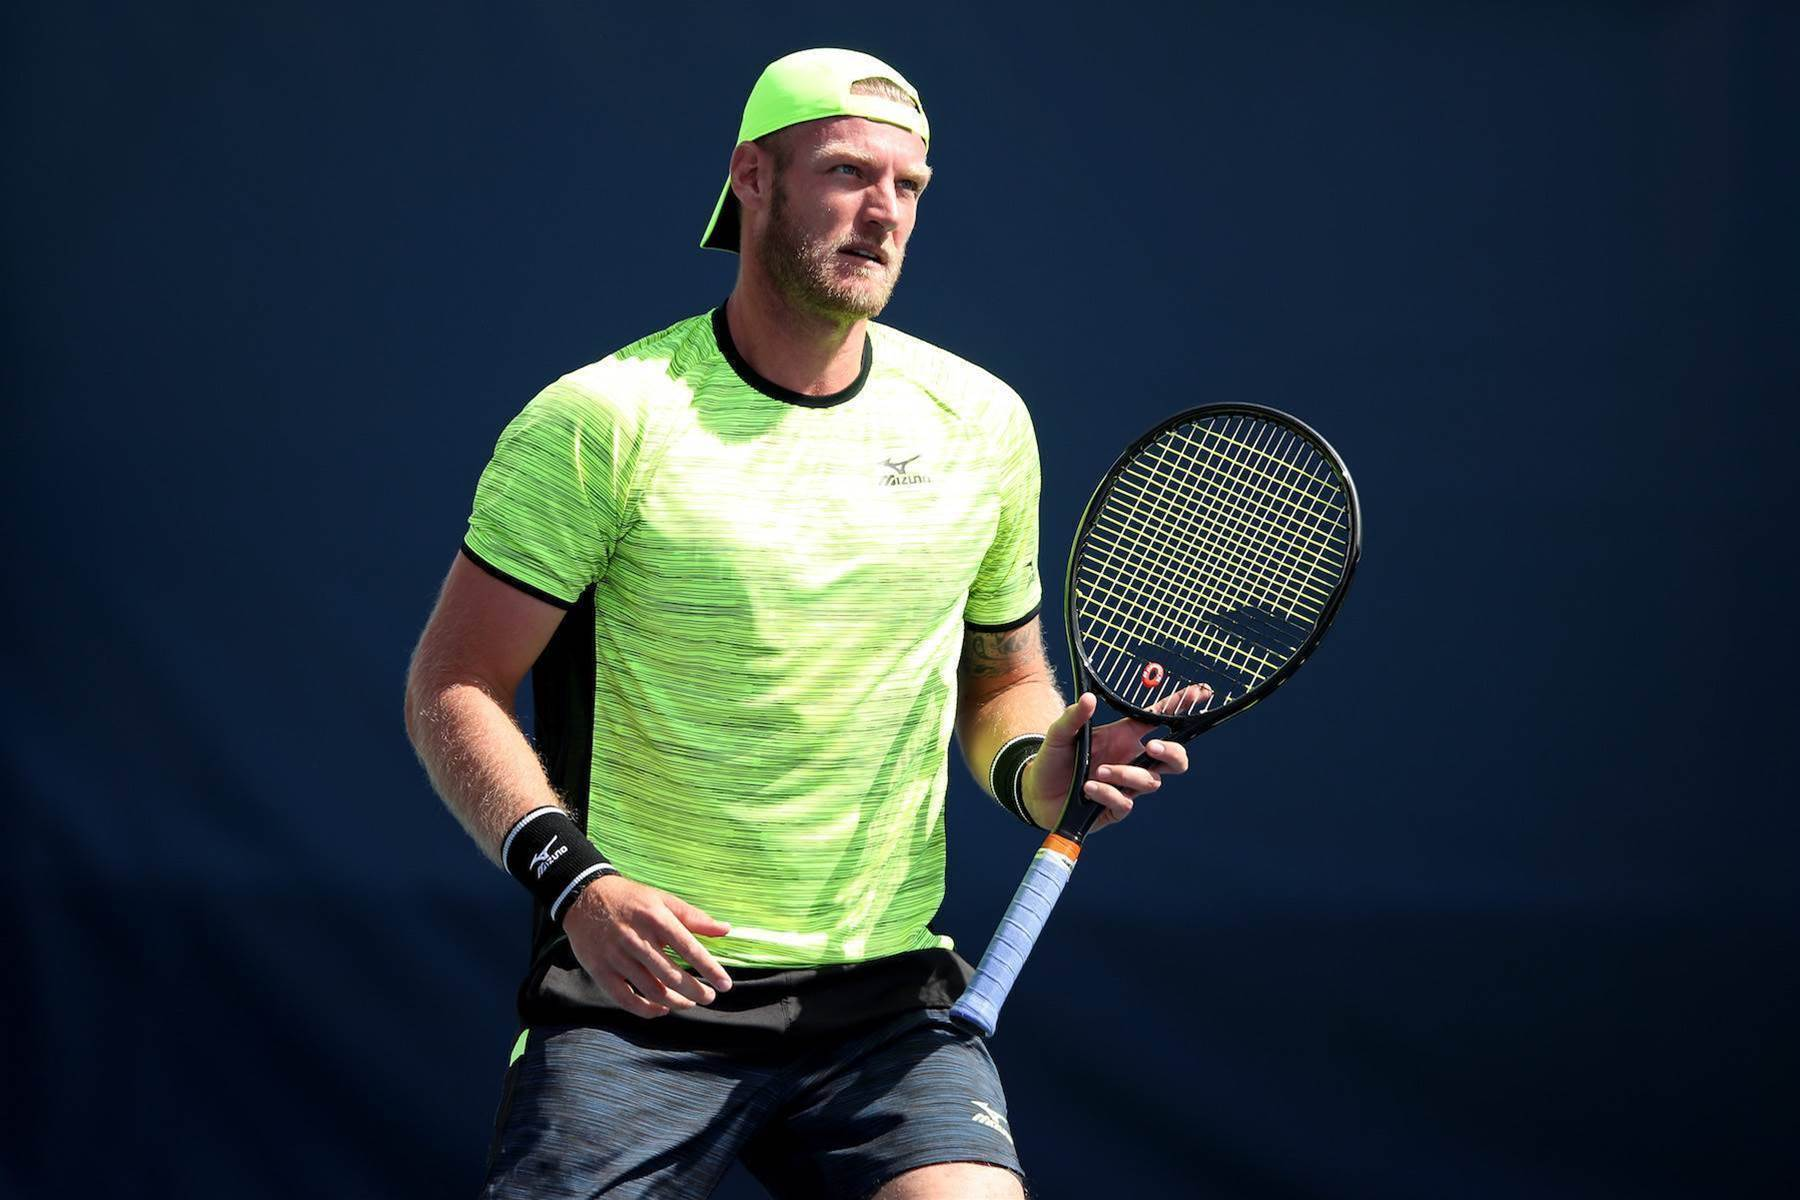 Aussie tennis star confirms retirement after Aus Open